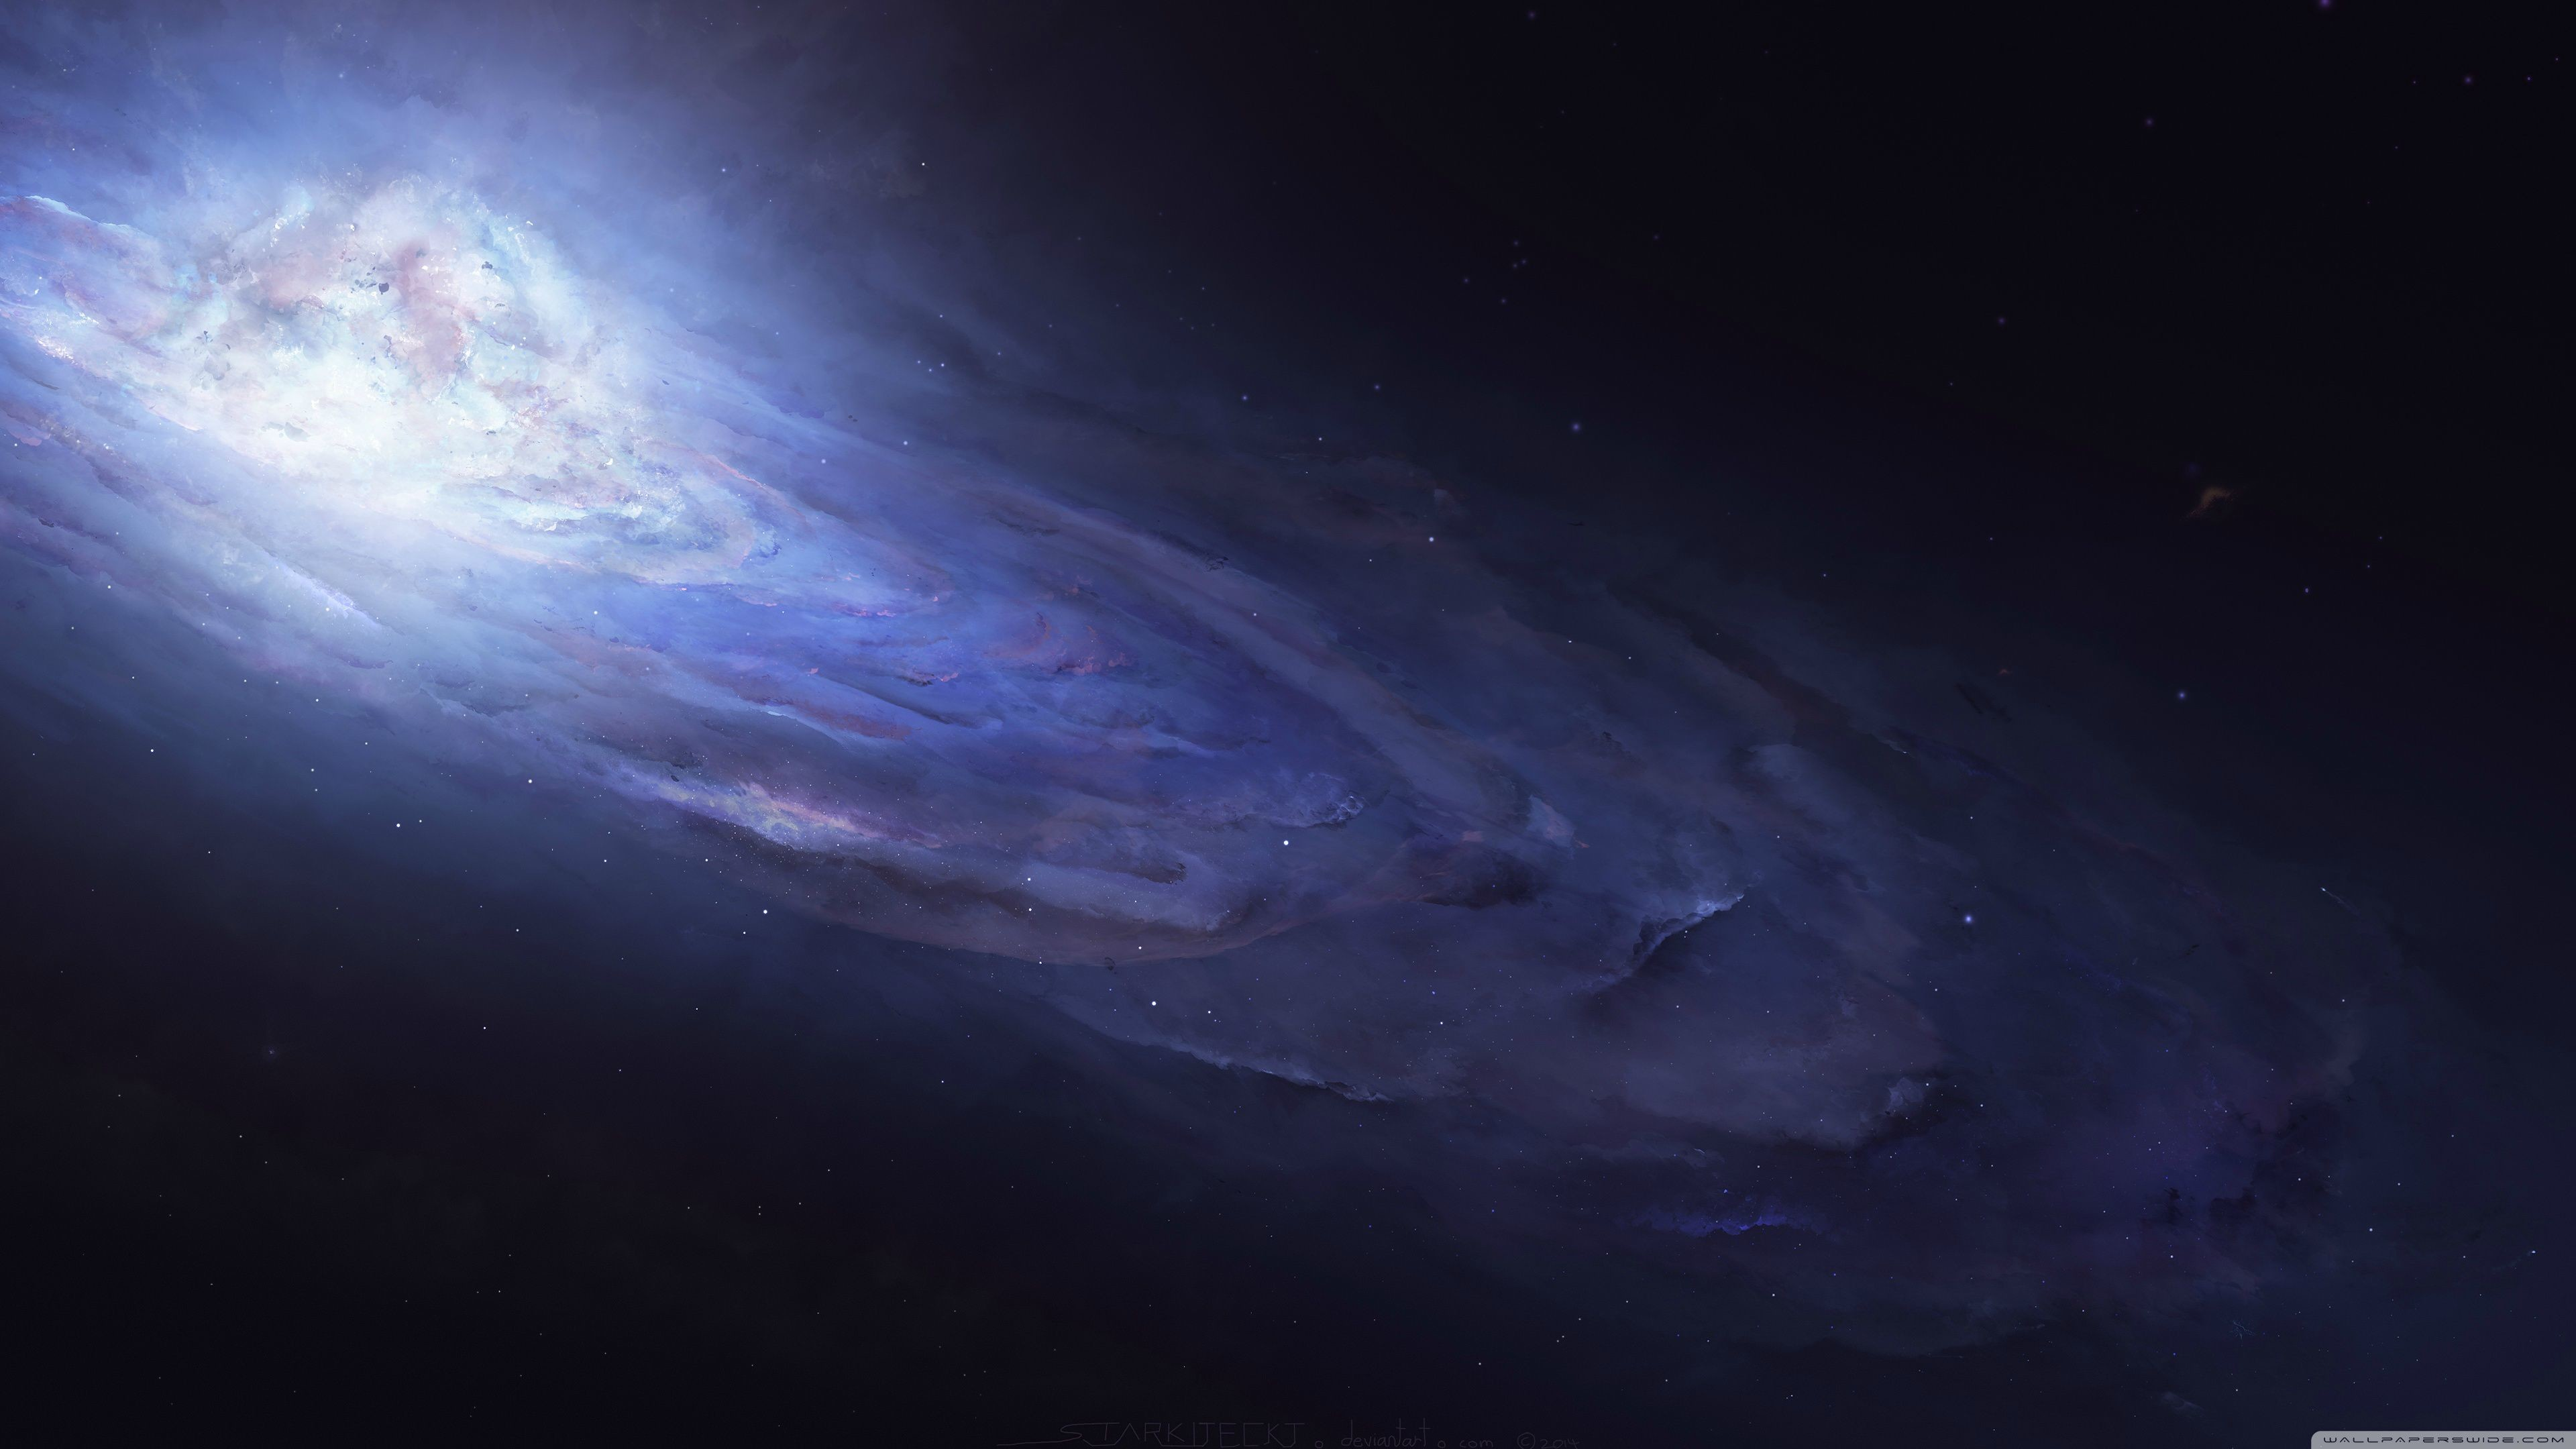 4k Space Backgrounds 12162 – HD Wallpapers Site